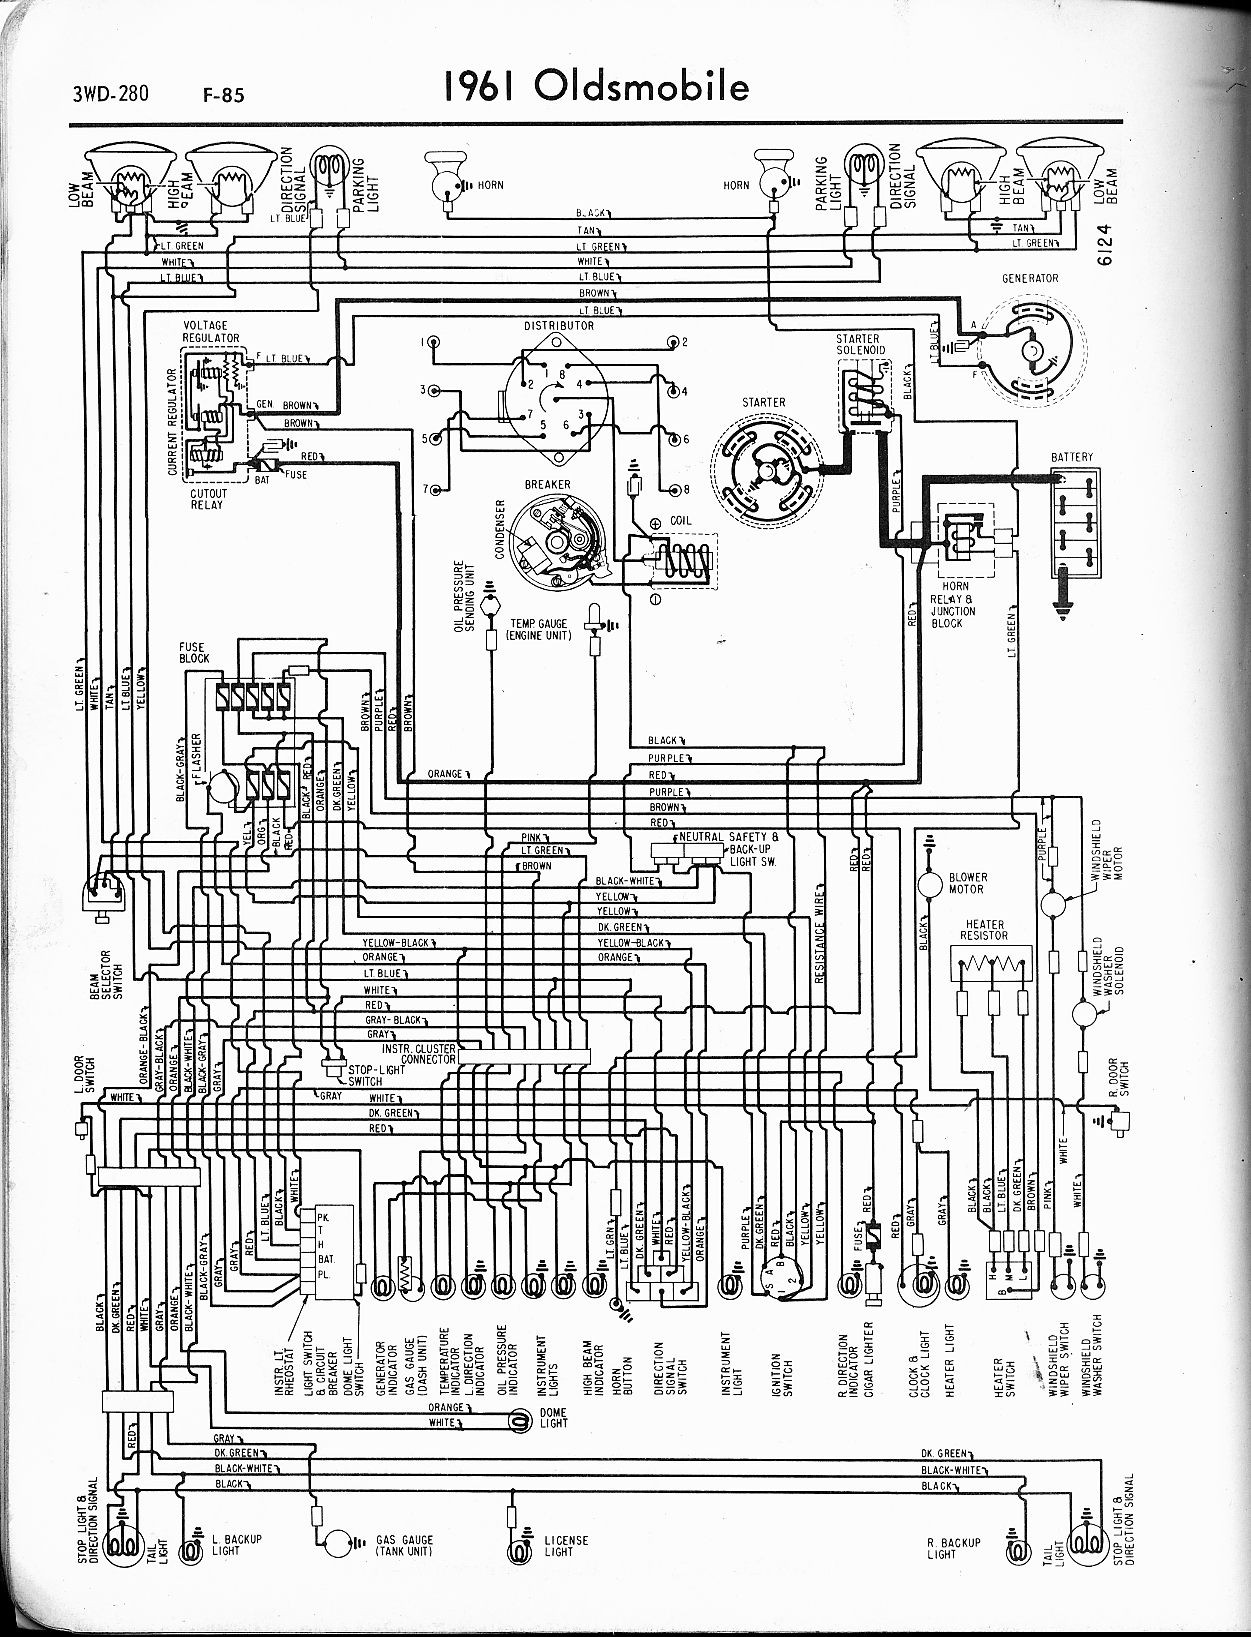 DIAGRAM] 68 Cutlass Wiring Diagram FULL Version HD Quality Wiring Diagram -  WIRINGDIAGRAMTIPS.EMEDIA-COMMUNICATION.FRDiagram Database - Emedia Communication